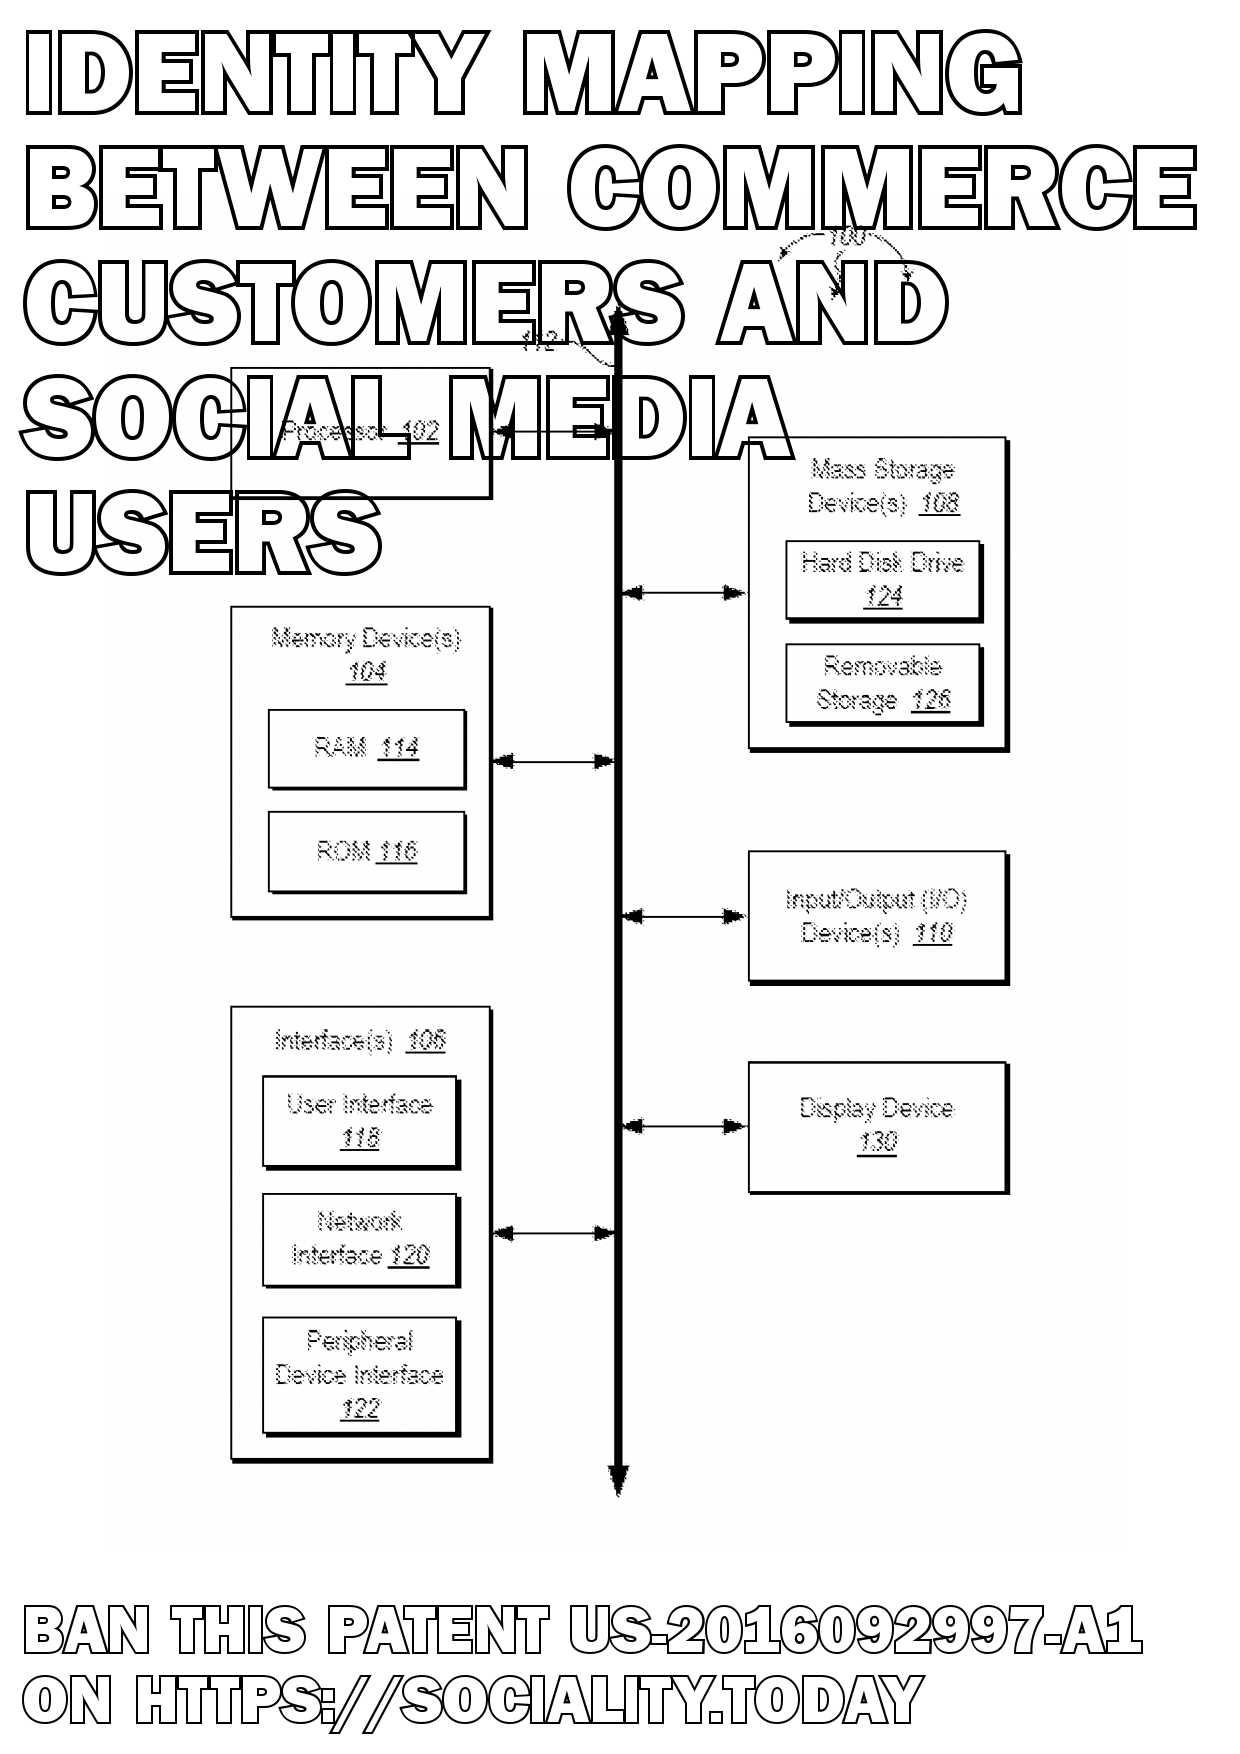 Identity Mapping Between Commerce Customers And Social Media Users  - US-2016092997-A1